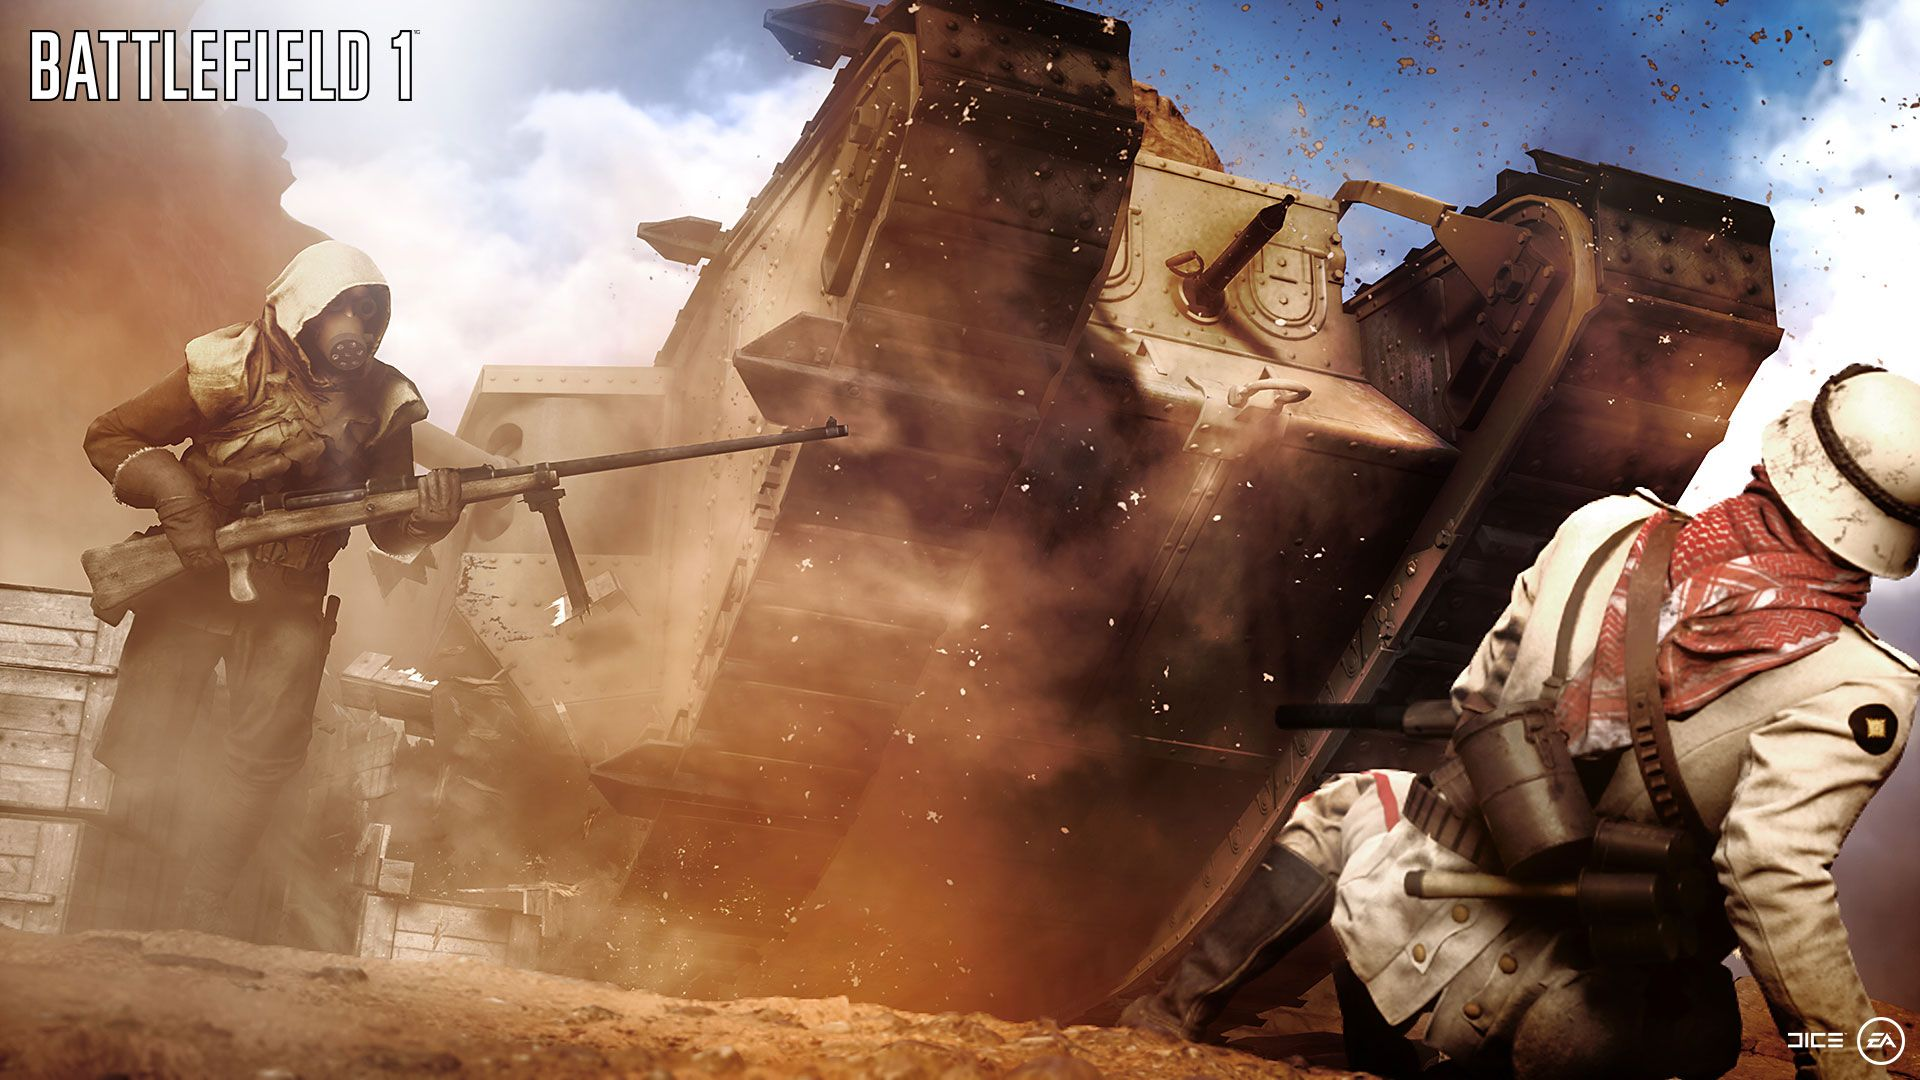 Battlefield1 Reveal 07.0 Battlefield 1 Will Be Shown Off At This EA Event In June